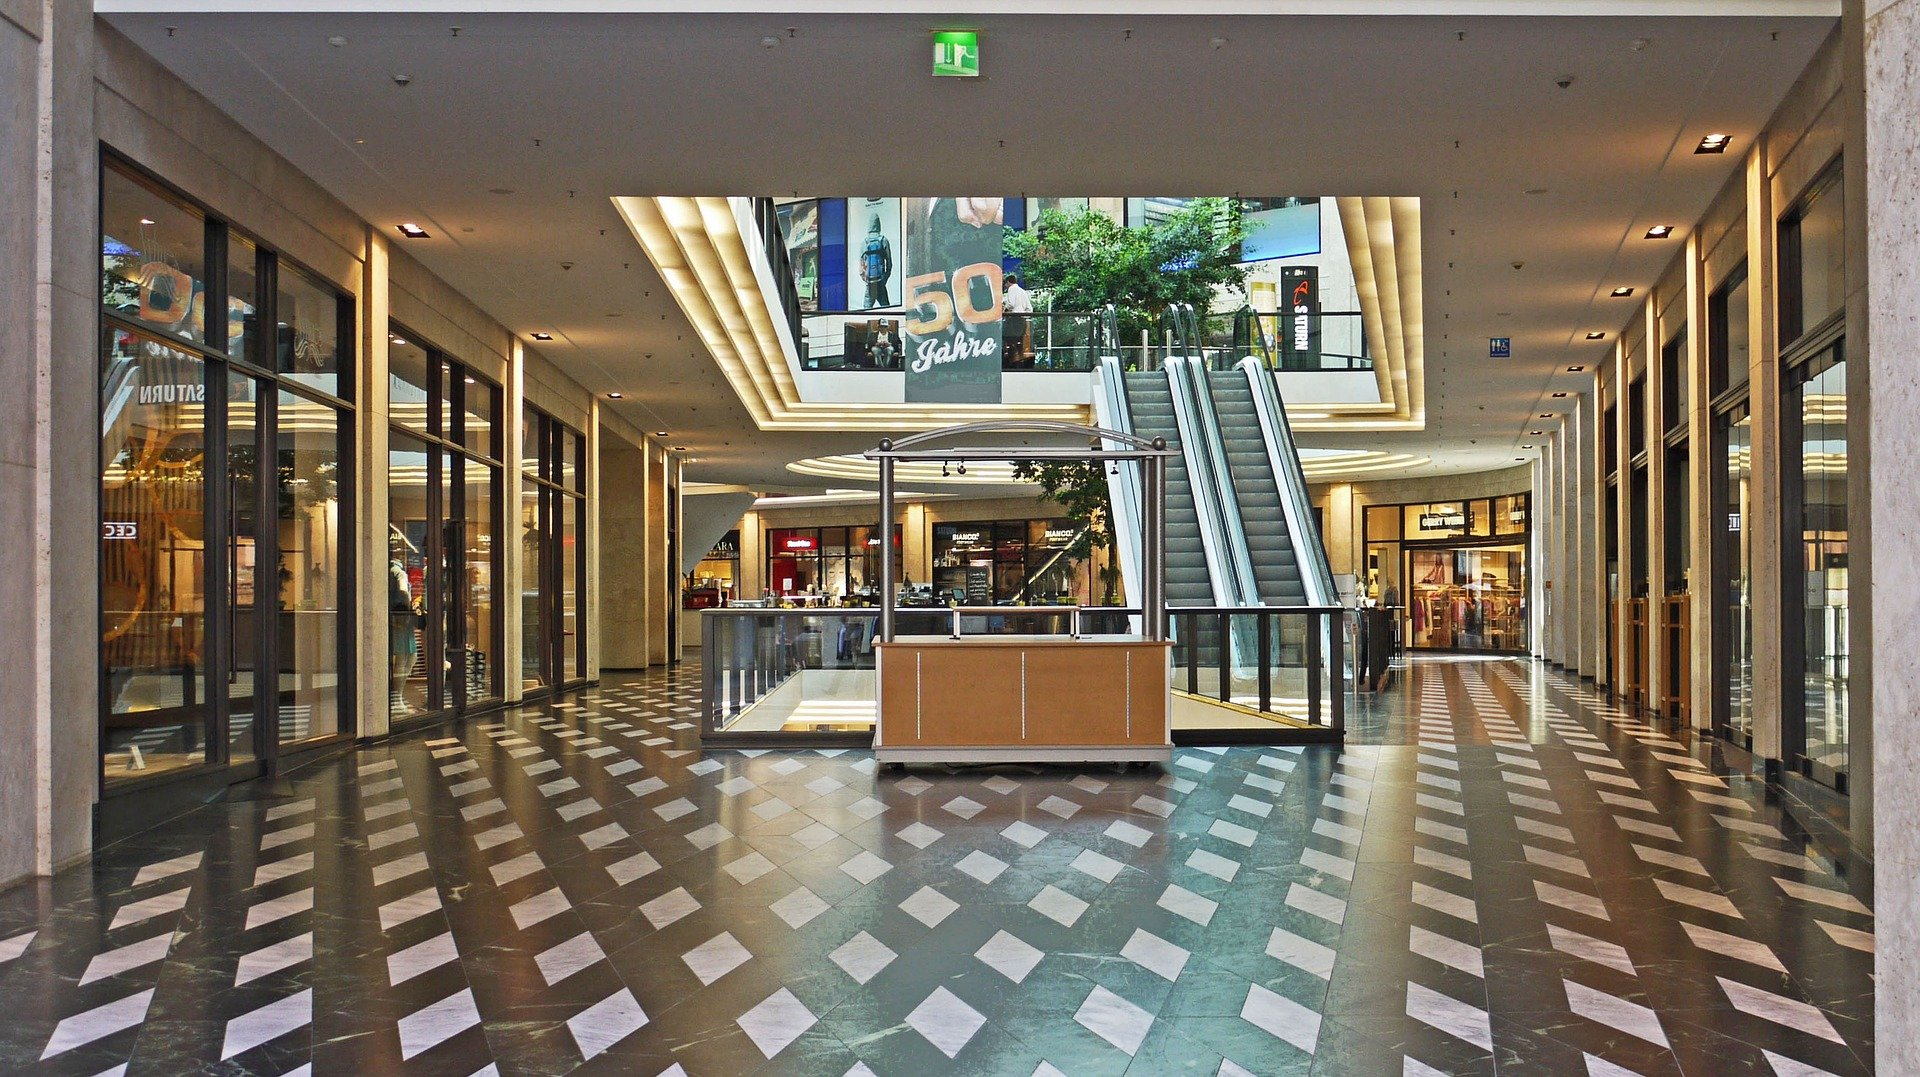 How To Leverage Video Wall Displays for Retail Applications